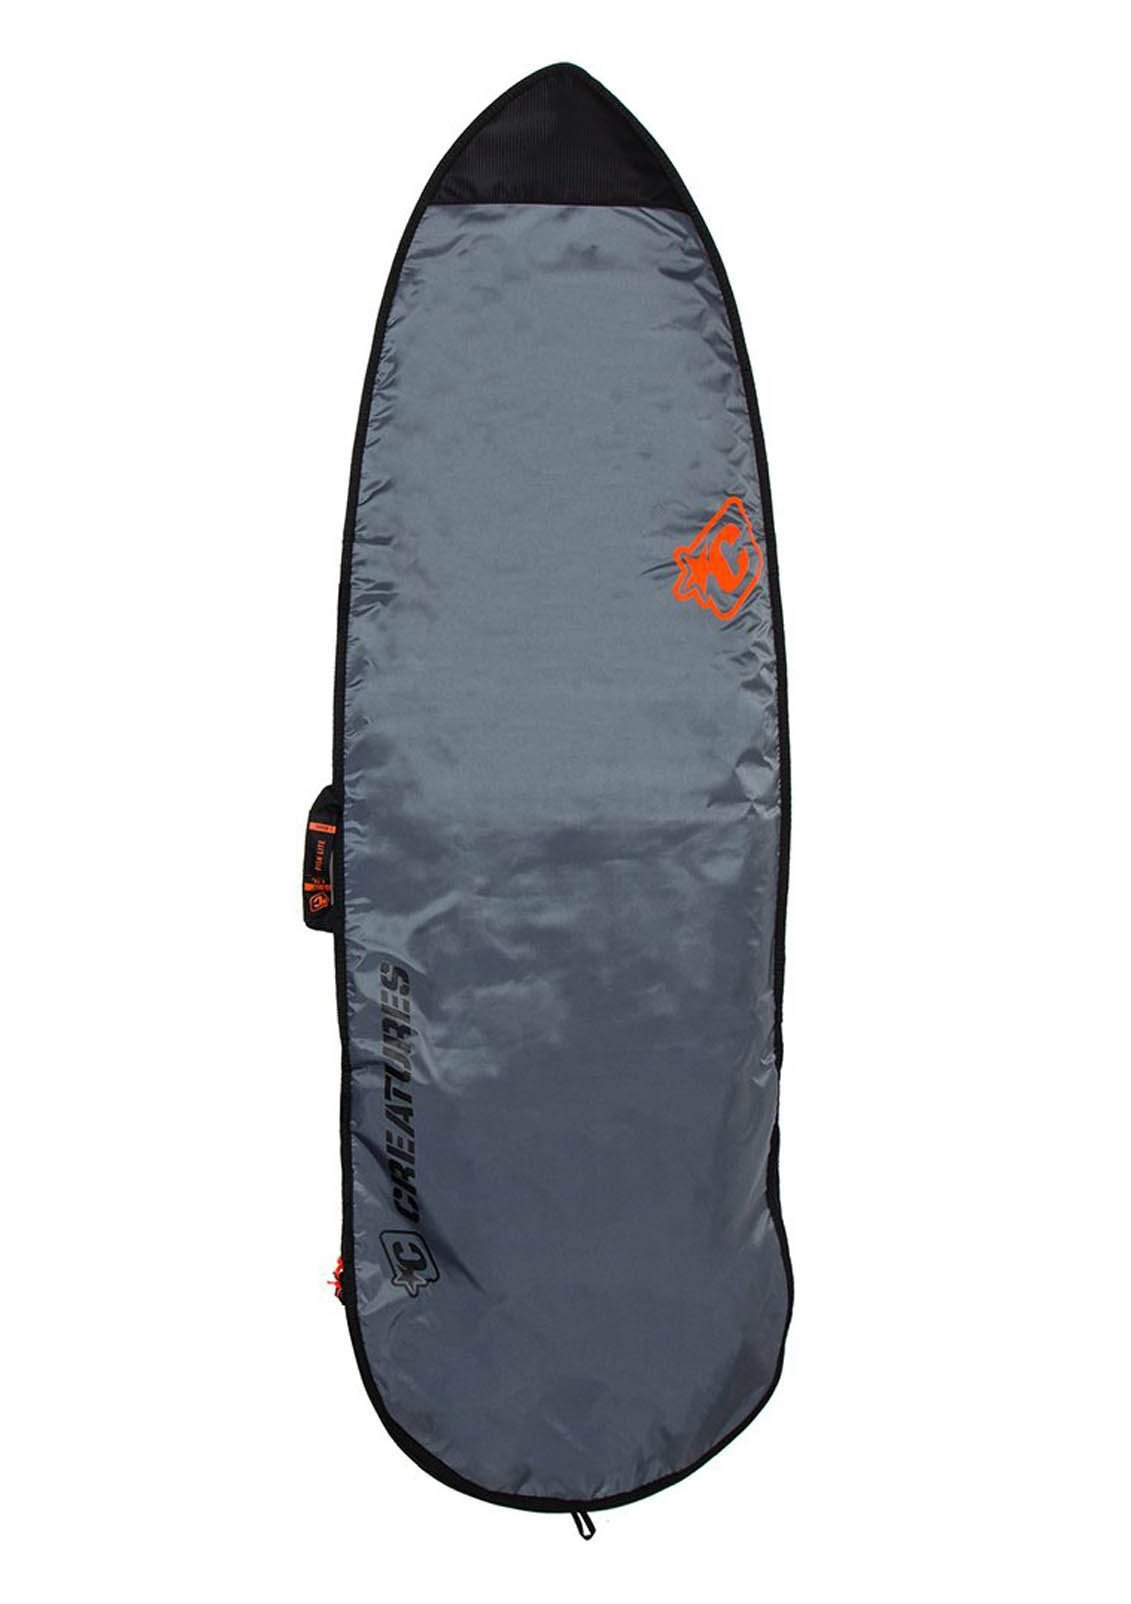 Creatures Of Leisure Lite Fish Surf Board Bag